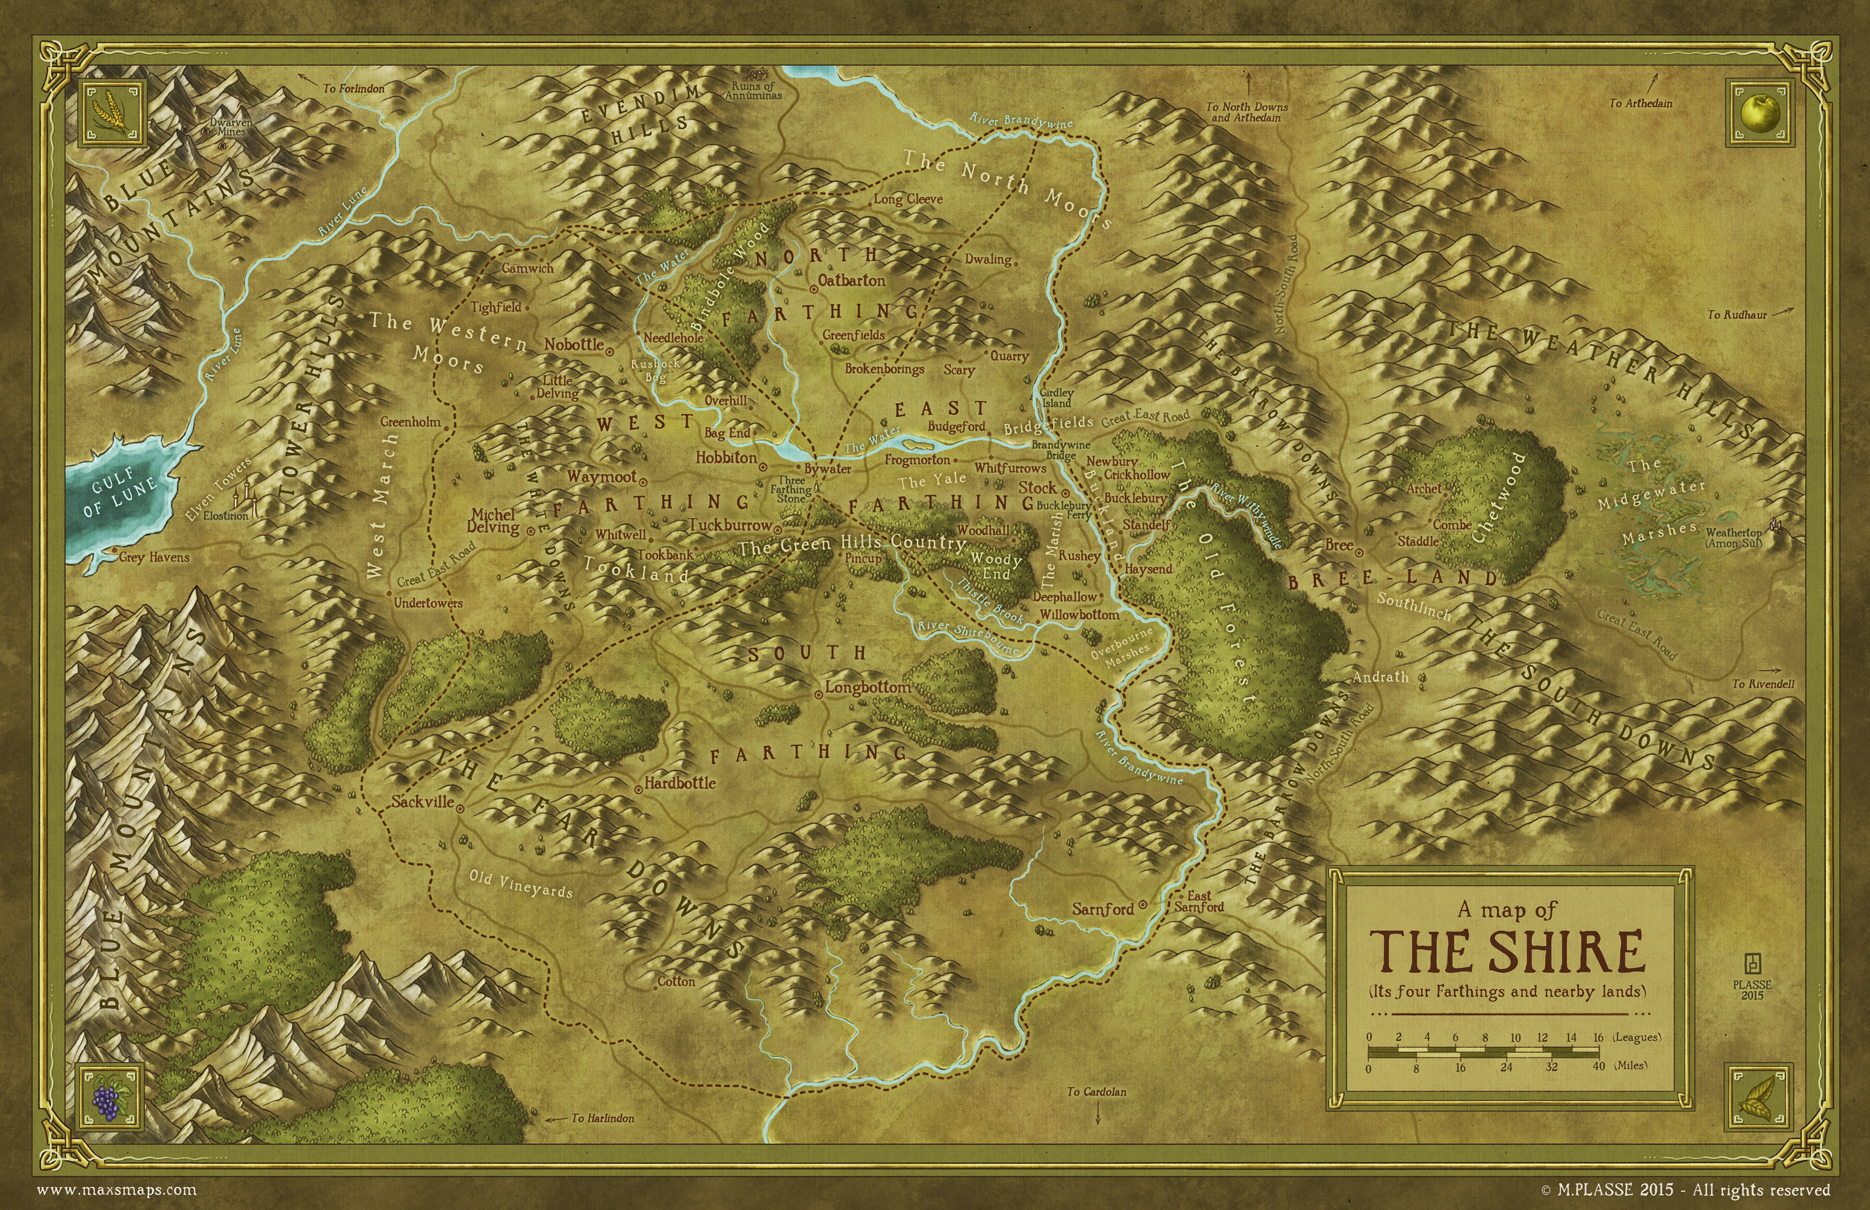 Maxime Plasse's map of The Shire